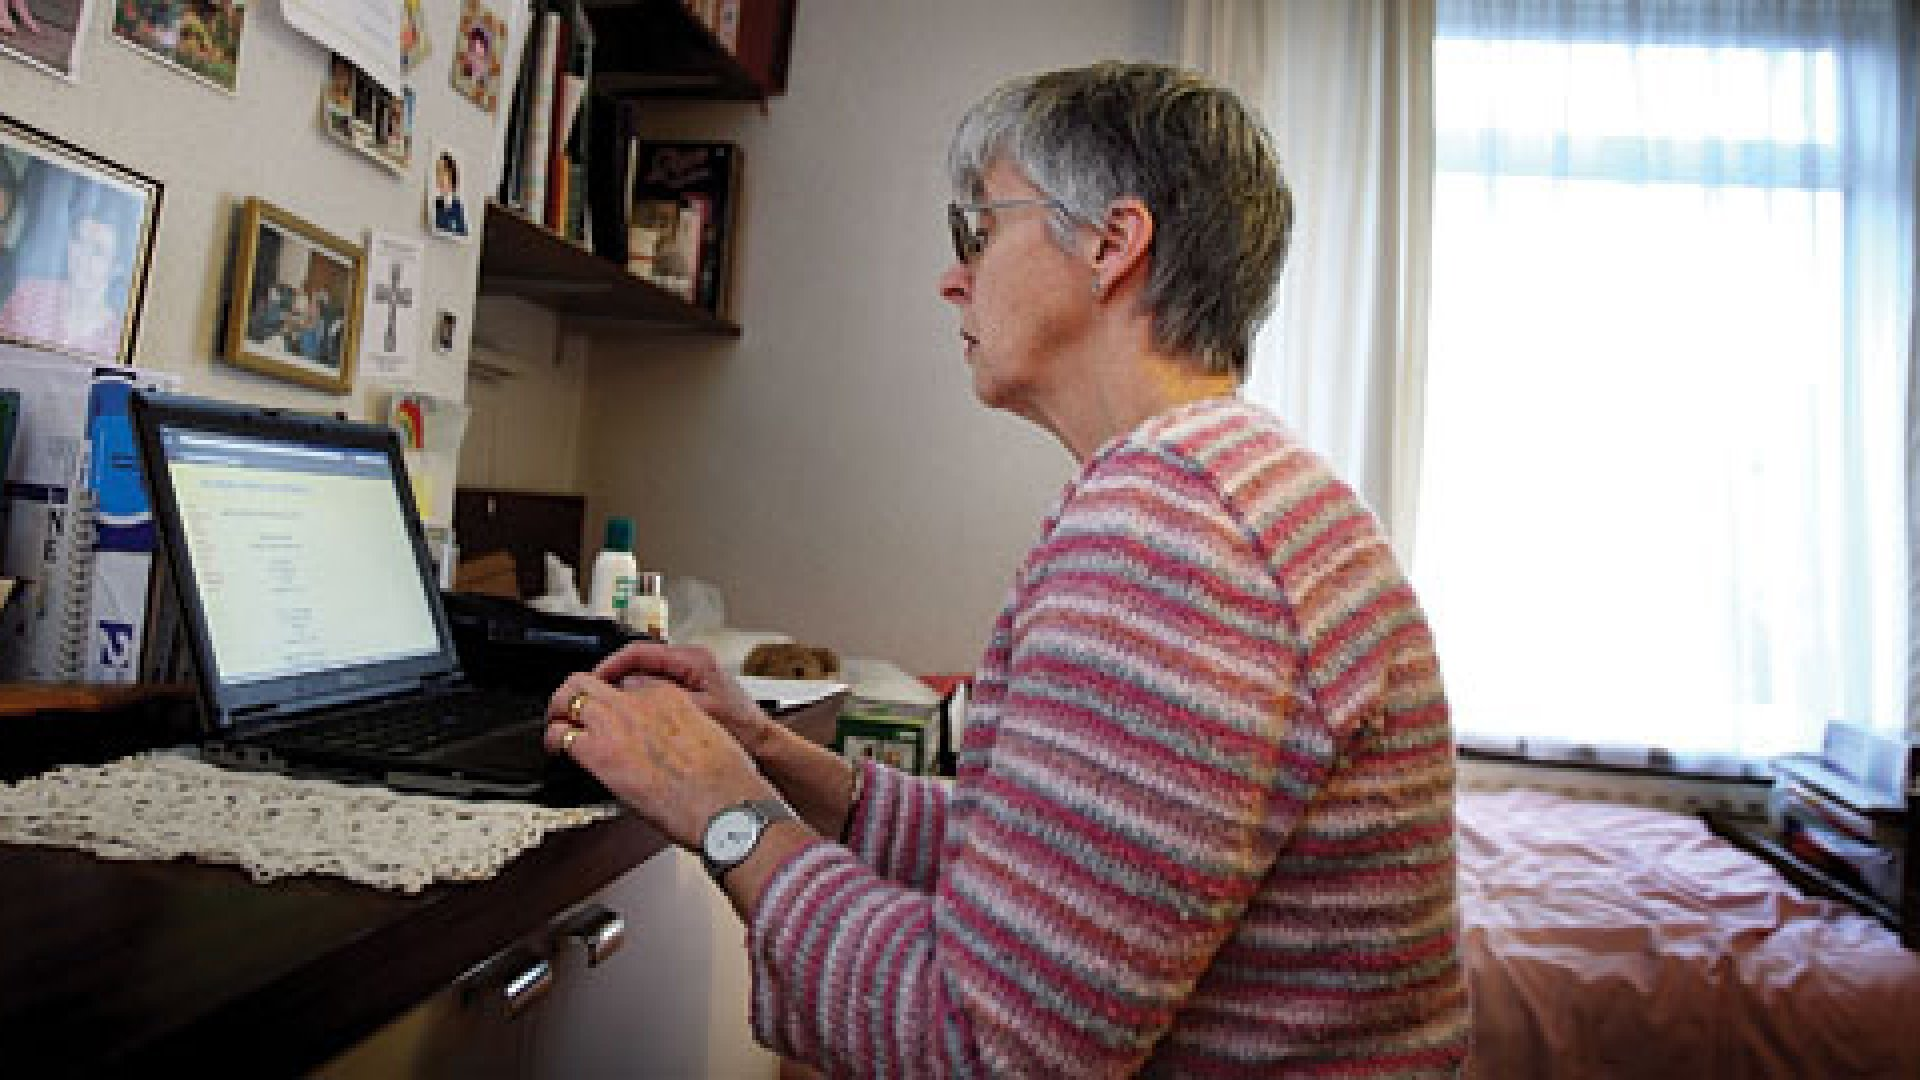 Social media is still dominated by younger users, but those over 50 are rapidly joining in.